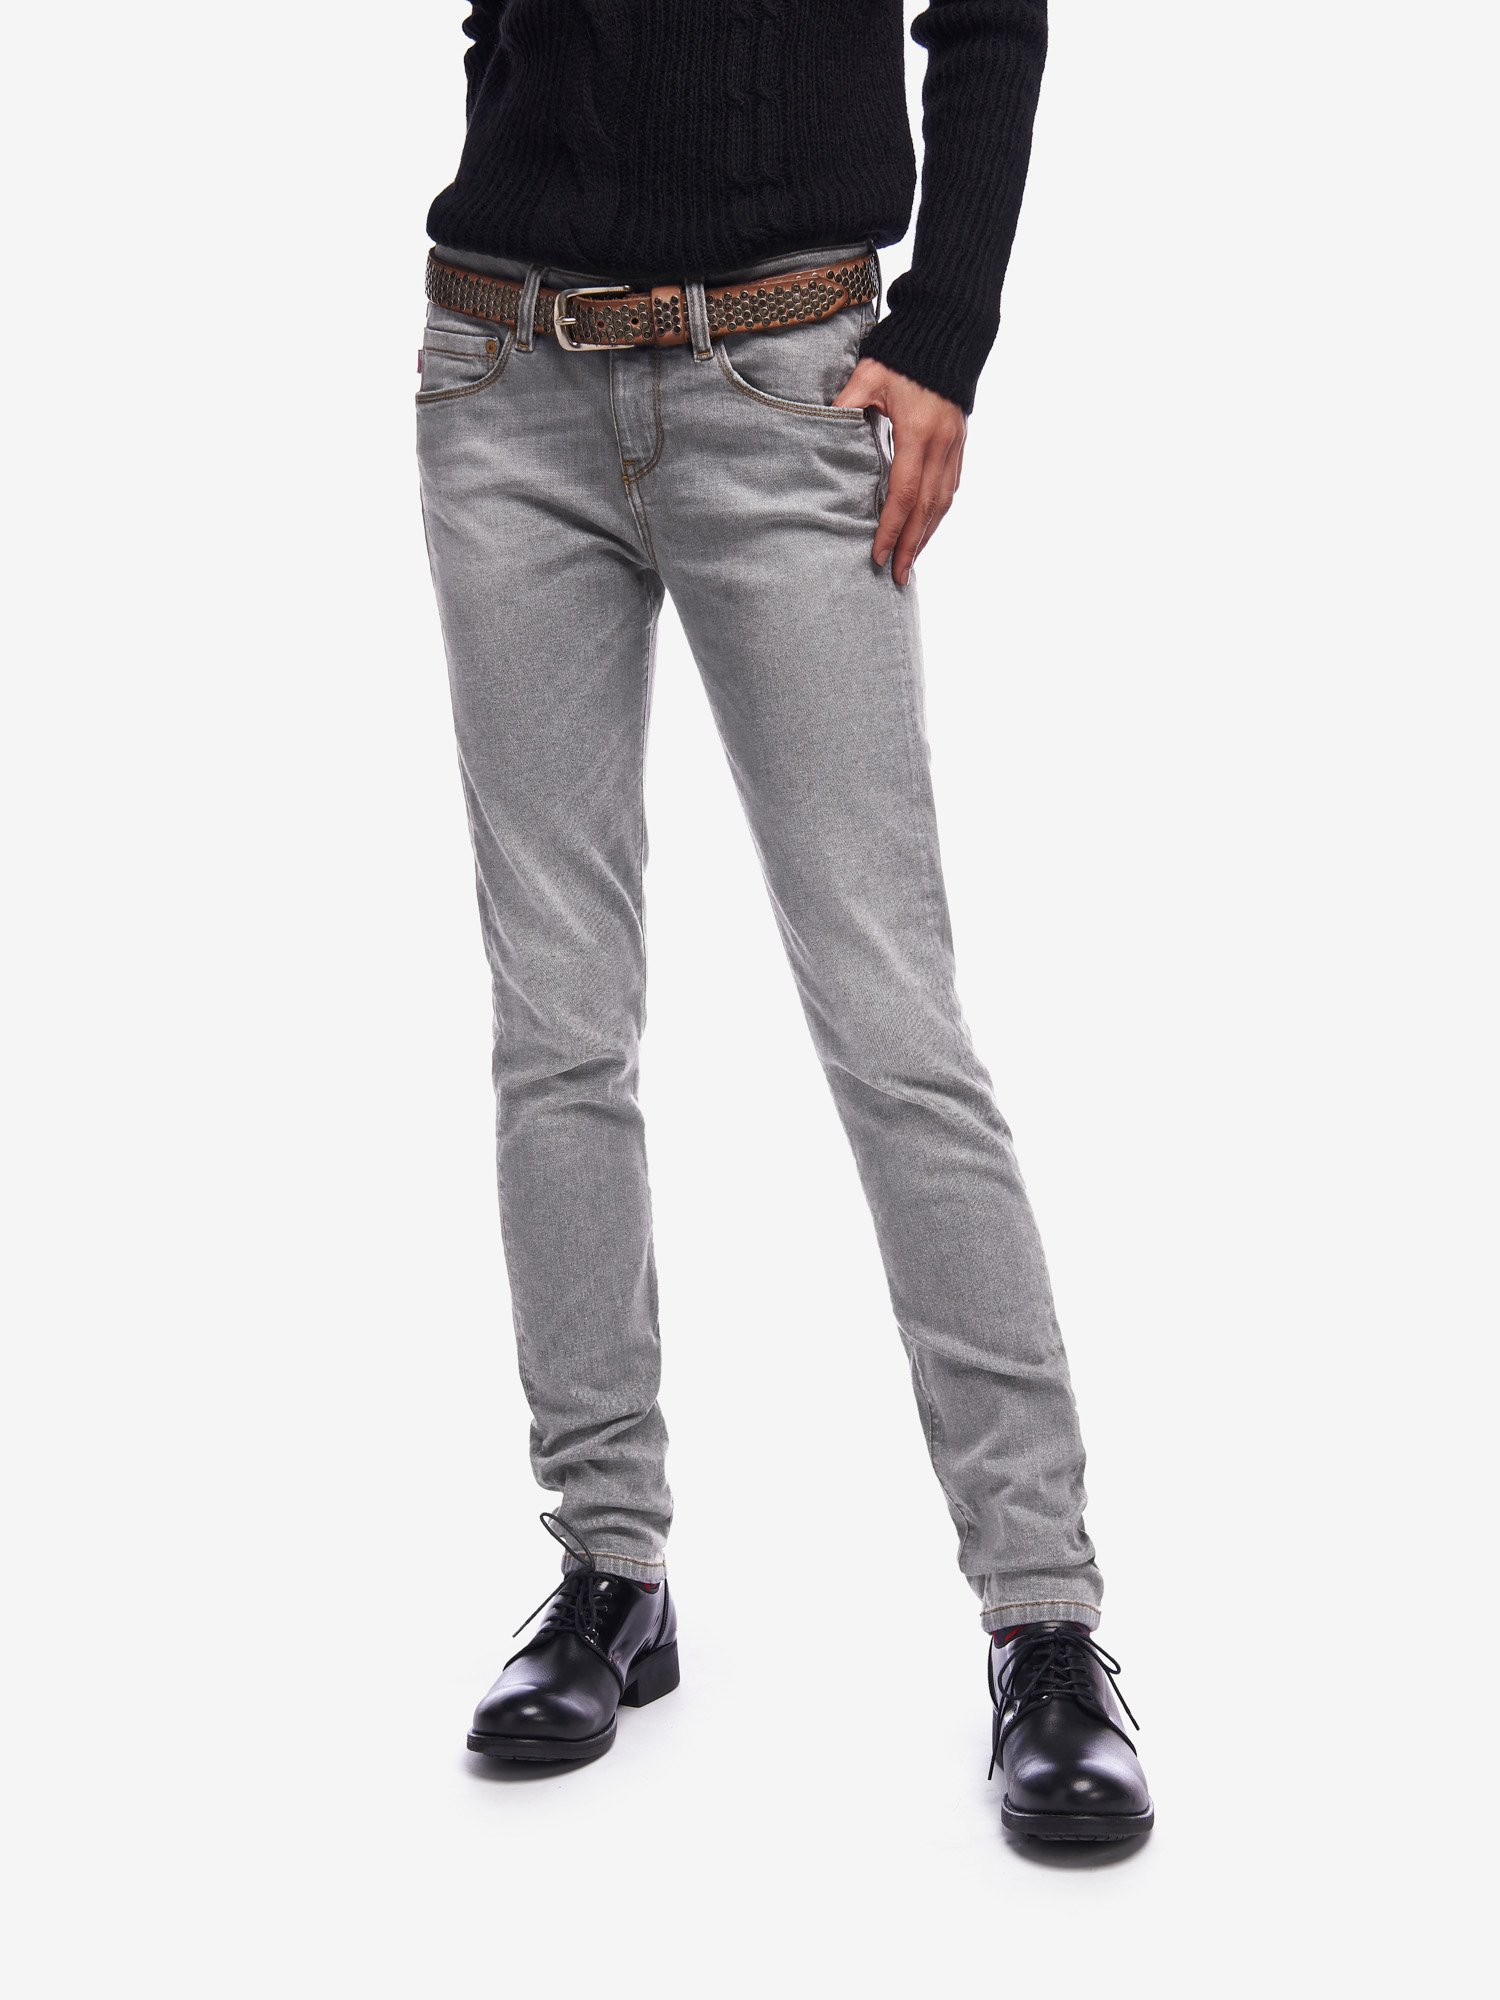 Blauer - JEANS DONNA GRIGIO OLD USED - Stone Washed Used - Blauer